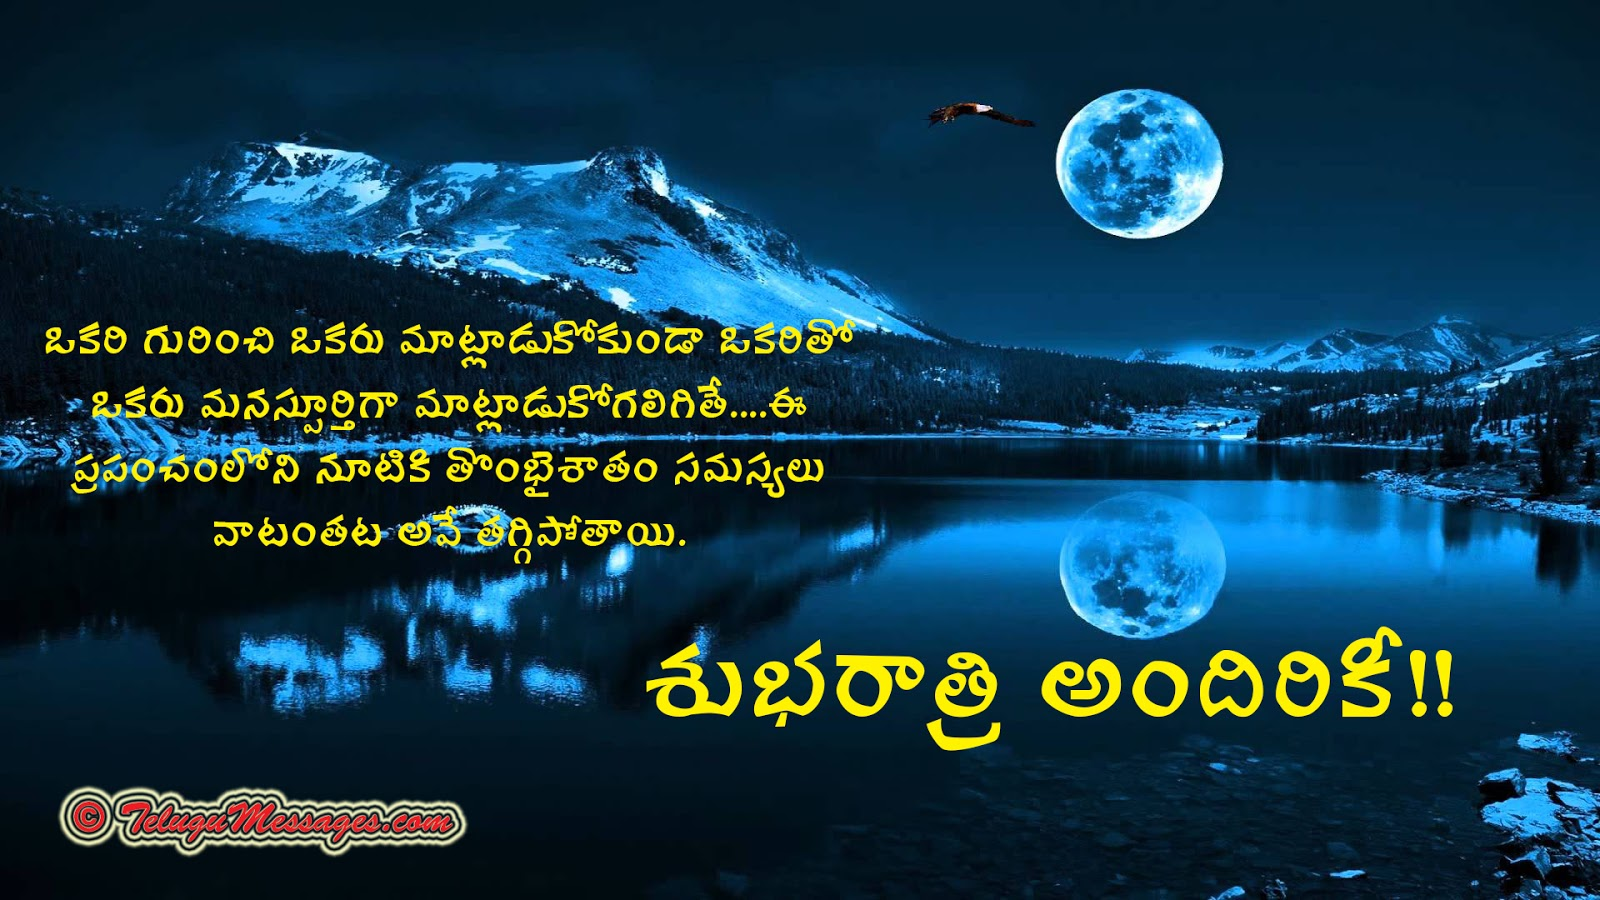 Telugu Good Morning Image And Sms Good Morning Quotes Jokes